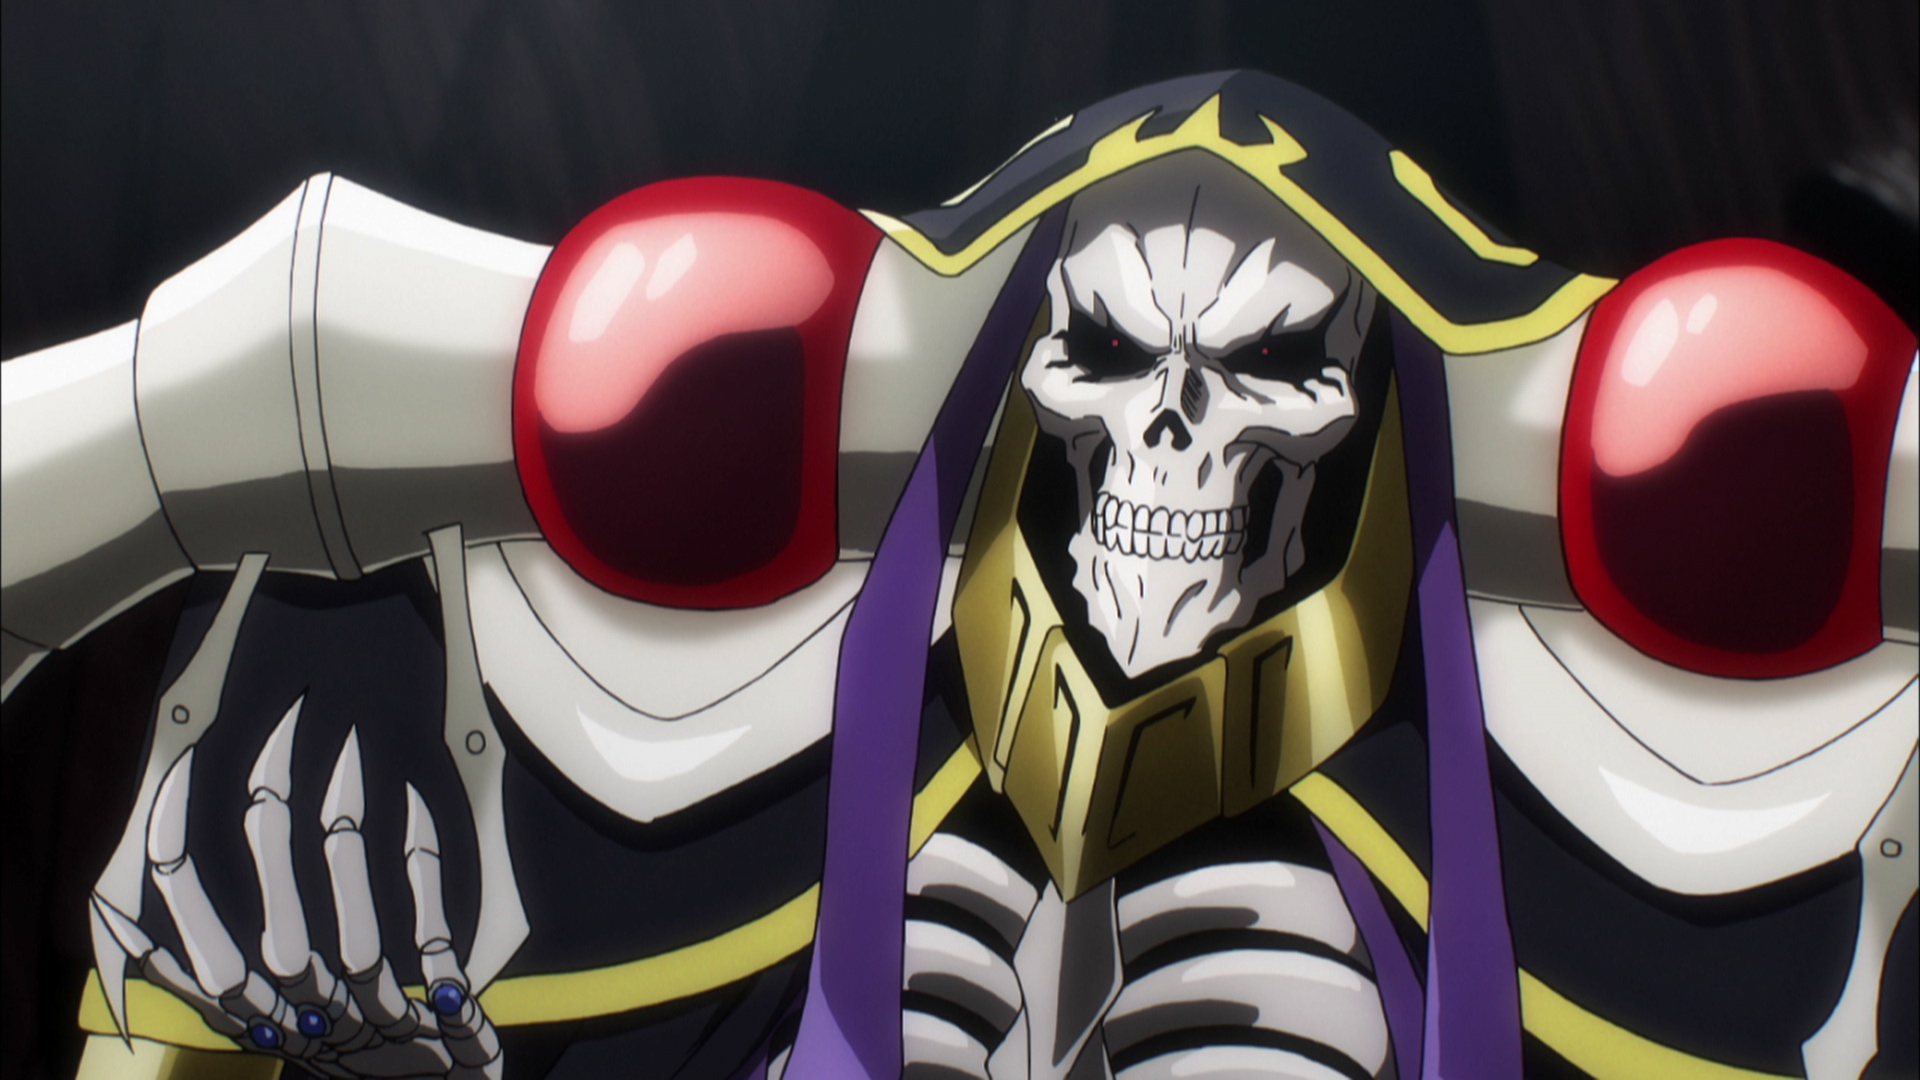 Watch Overlord Season 3 Episode 39 Sub & Dub | Anime